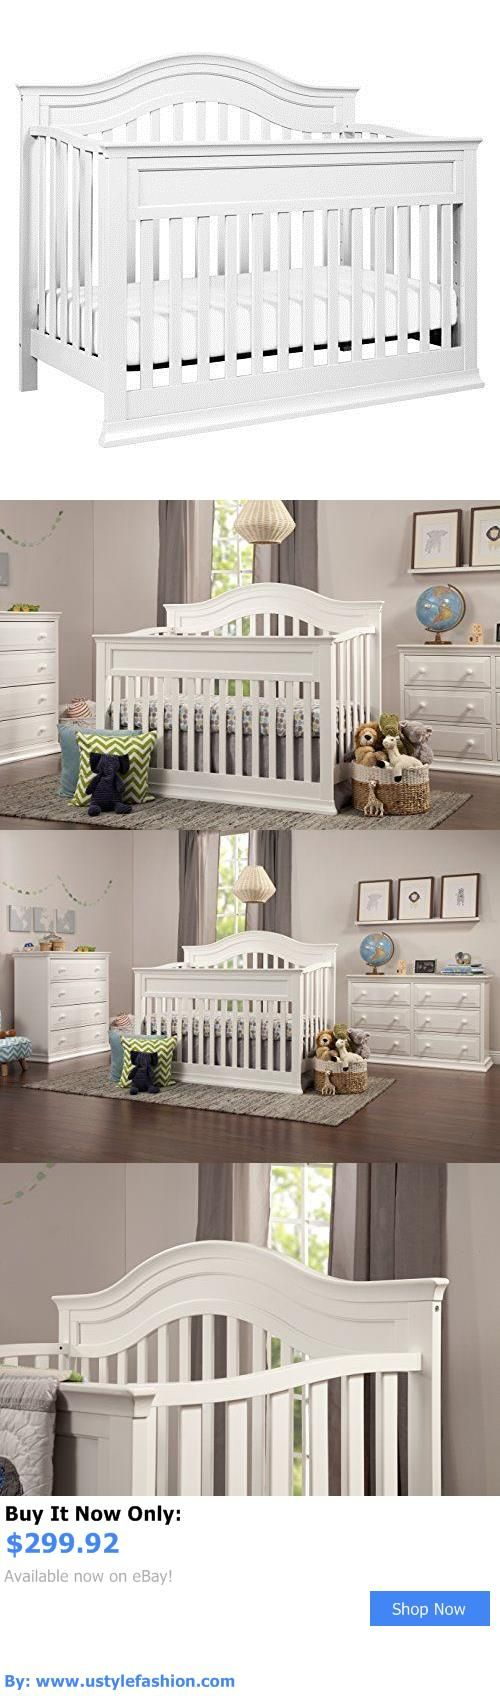 Bassett Baby Crib | Baby Cribs Burlington | Wendy Bellissimo Crib